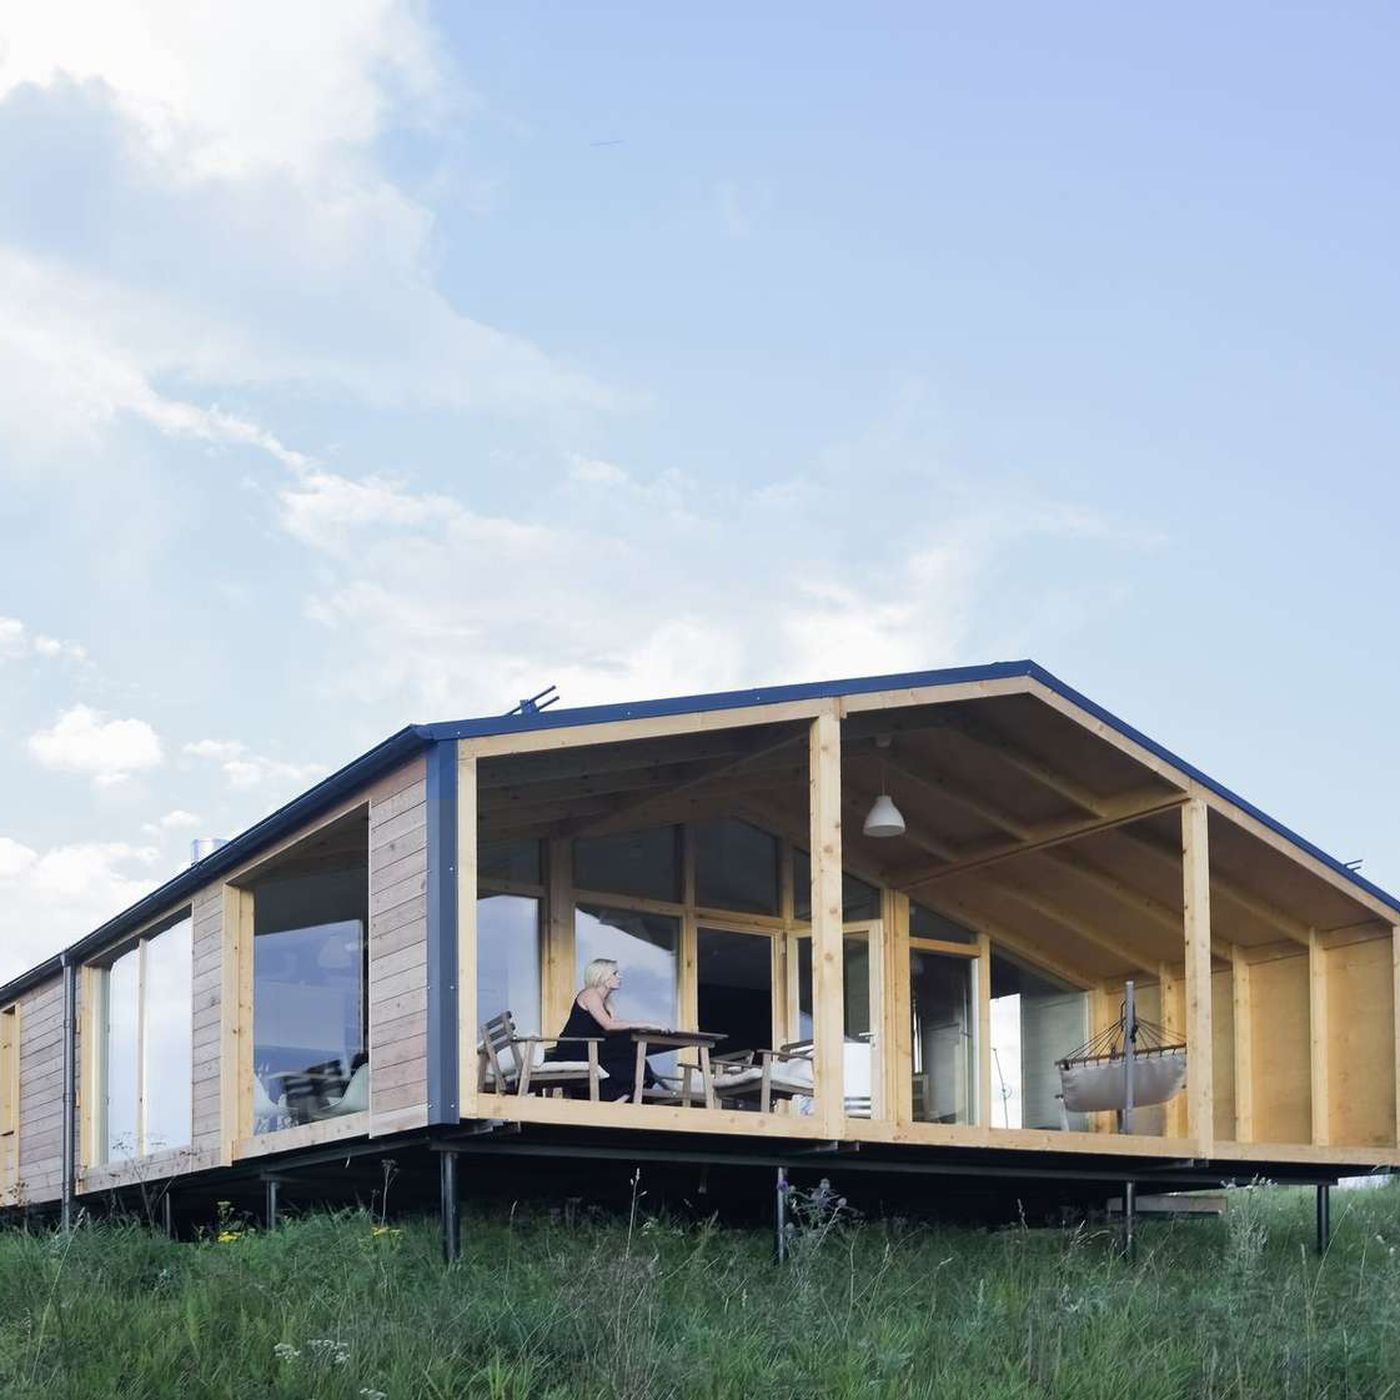 7 prefab homes that impressed us in 2016 - Curbed